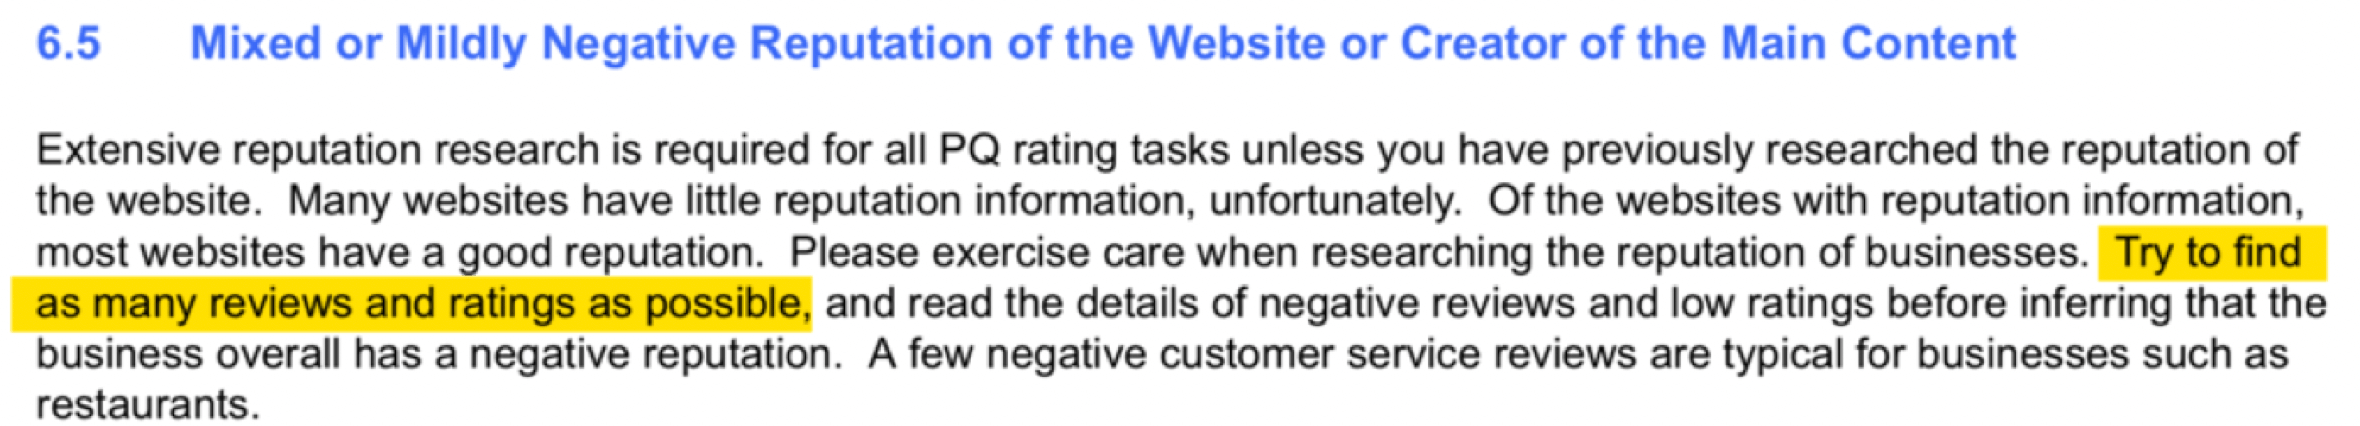 Google Quality Raters' Guidelines - Mildly Negative Reviews